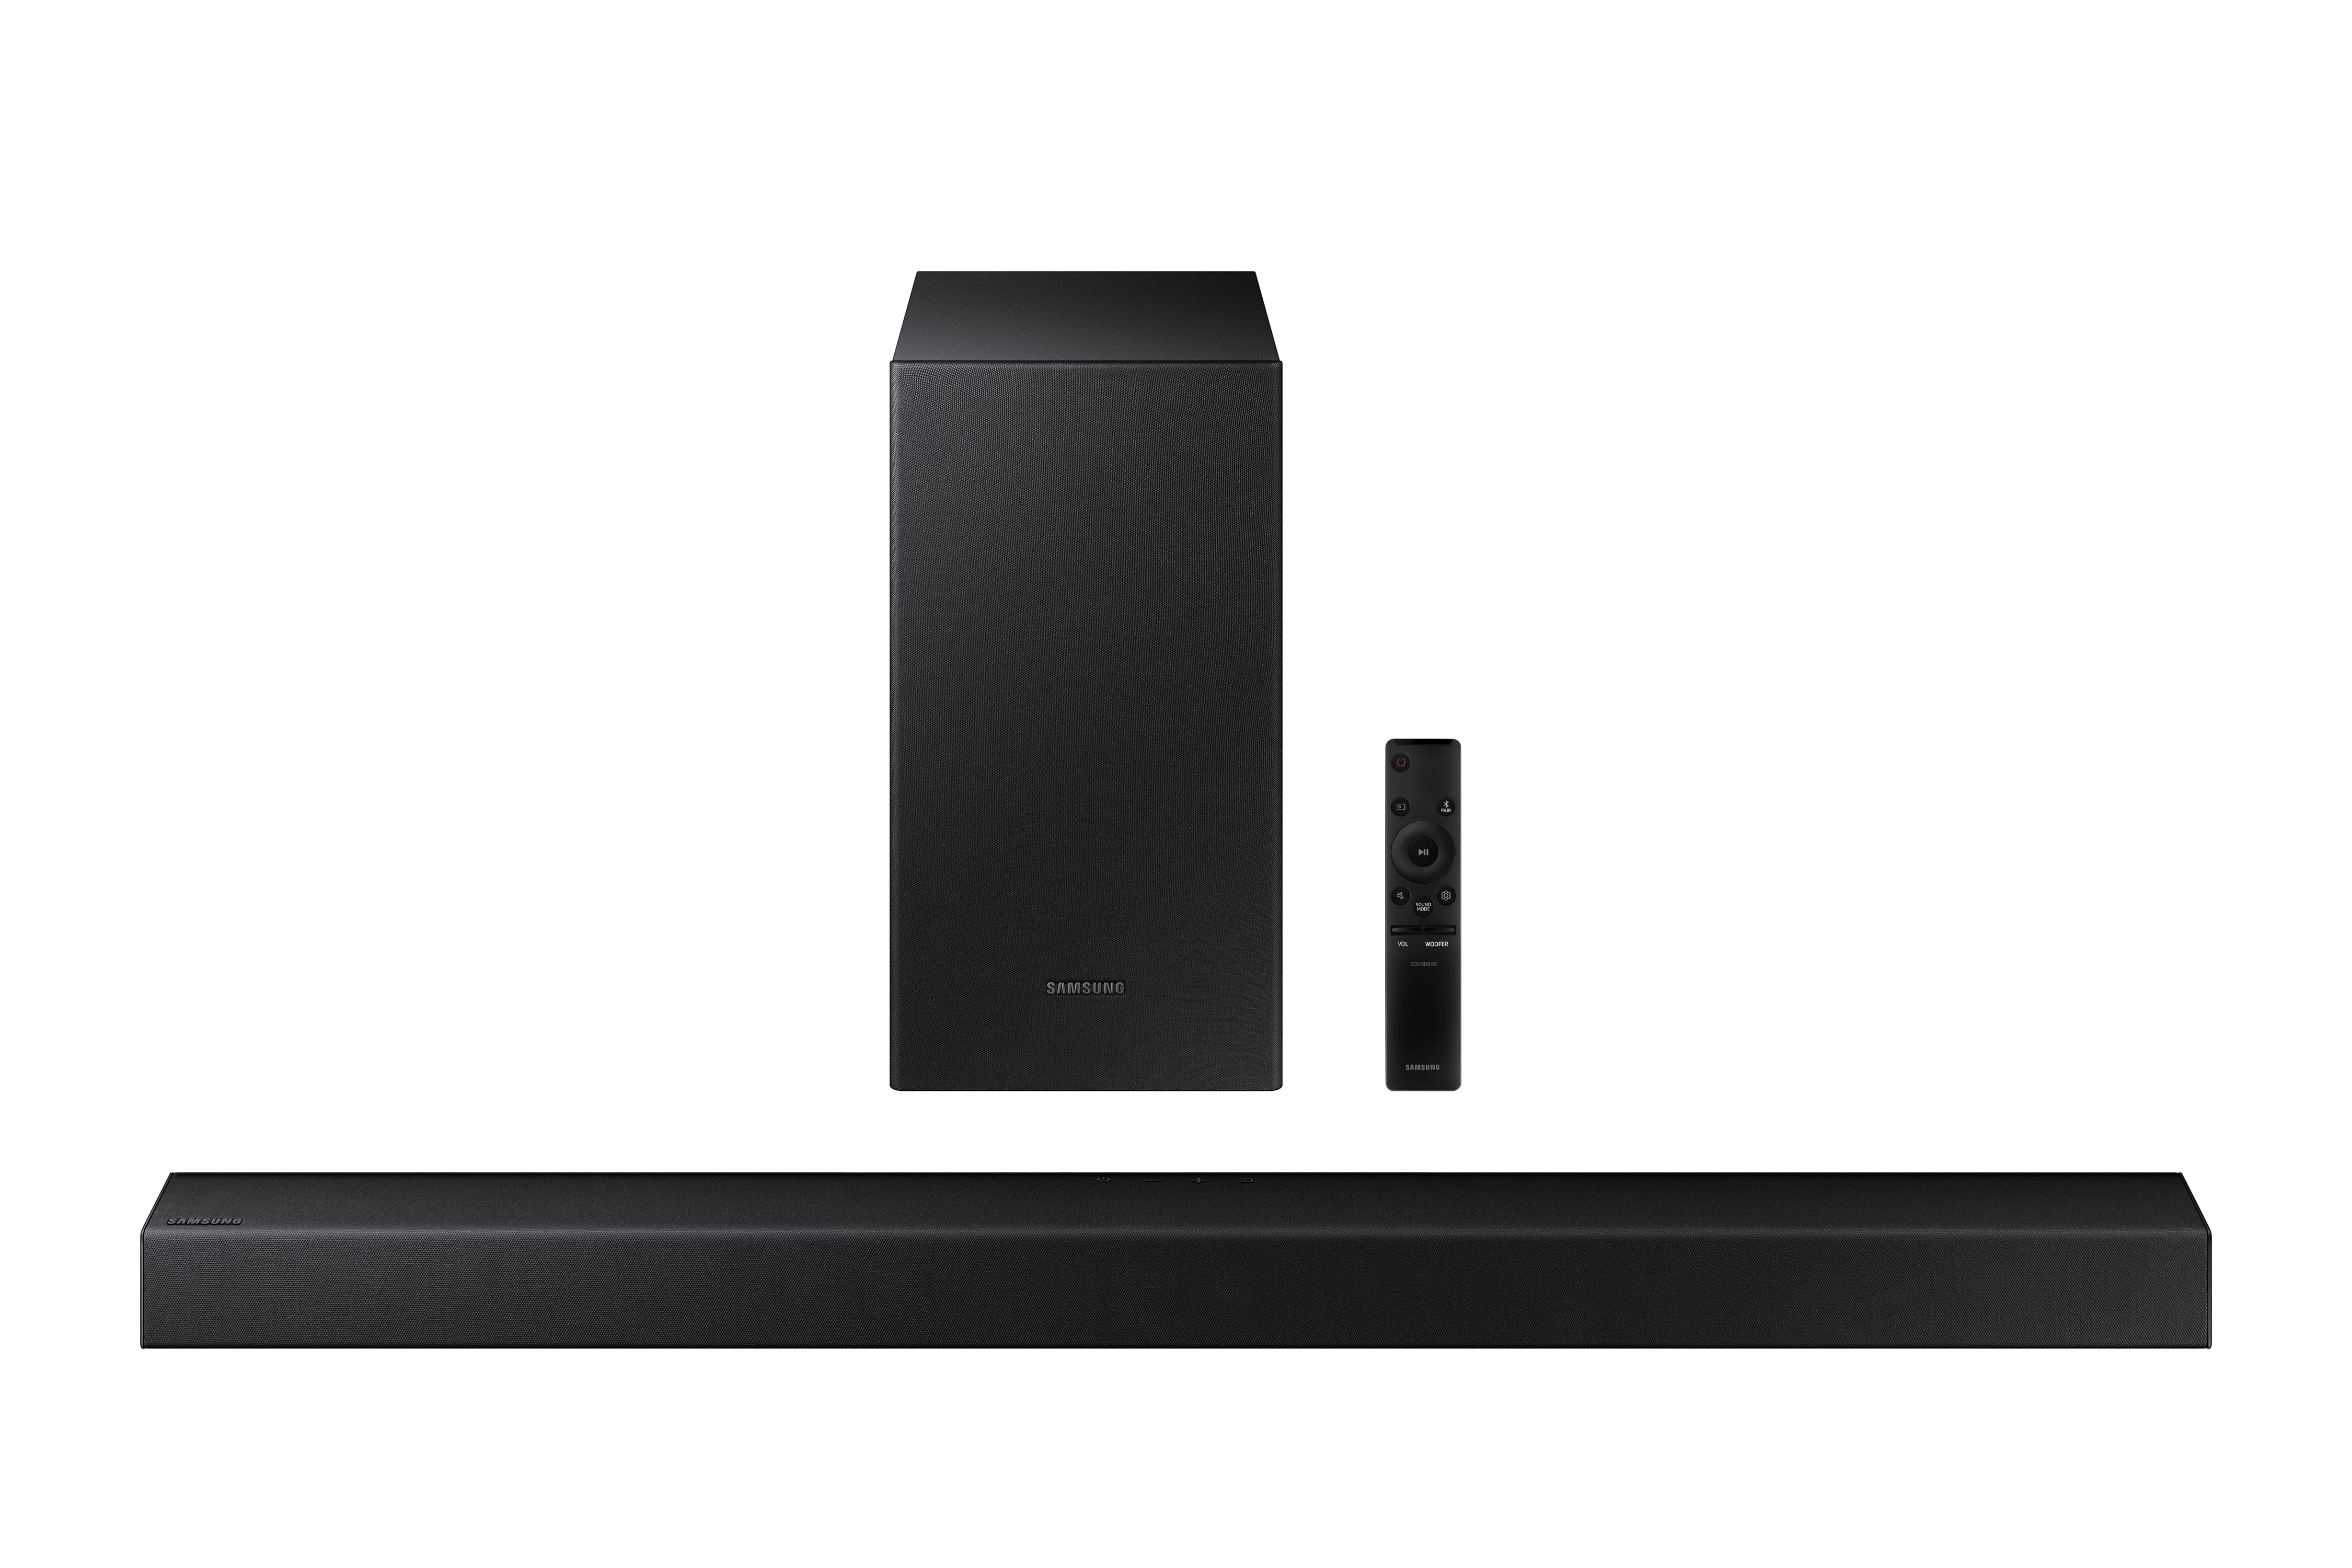 *** Starting on Nov 25 *** SAMSUNG 170W 2.1ch Soundbar with Wireless Subwoofer (Black Friday Deal) for $99 - Free Shipping